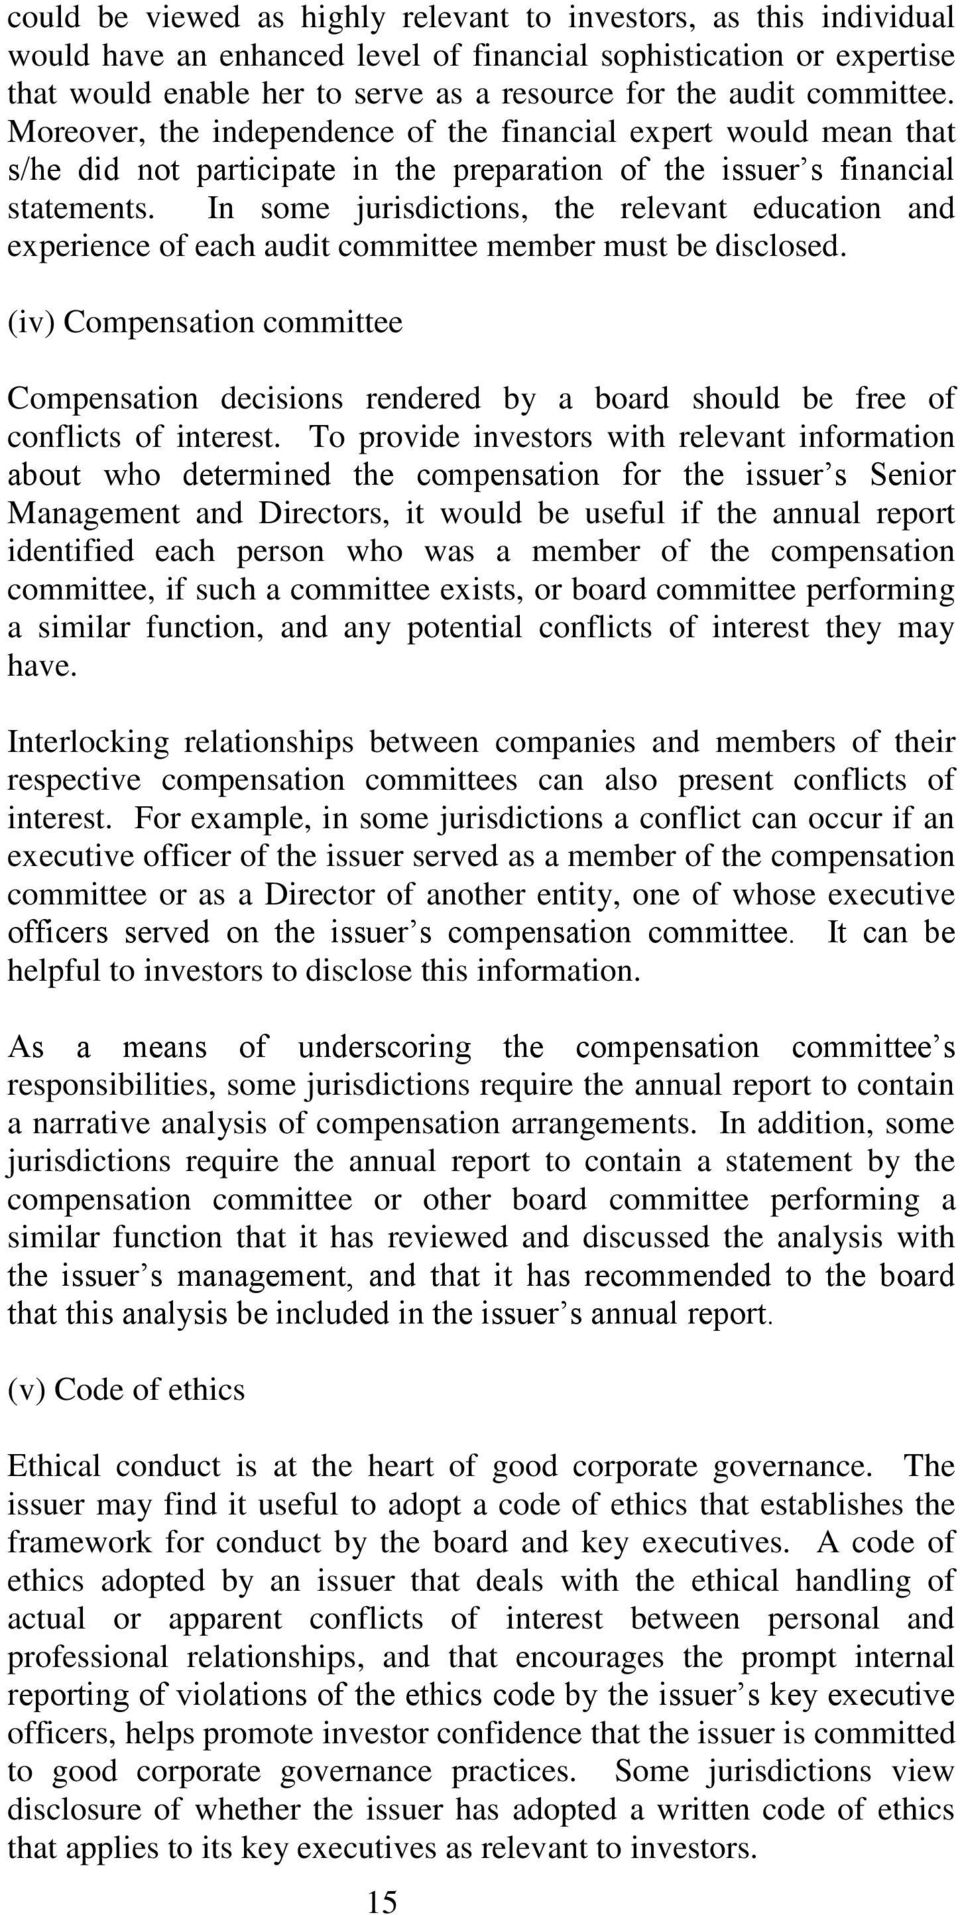 In some jurisdictions, the relevant education and experience of each audit committee member must be disclosed.